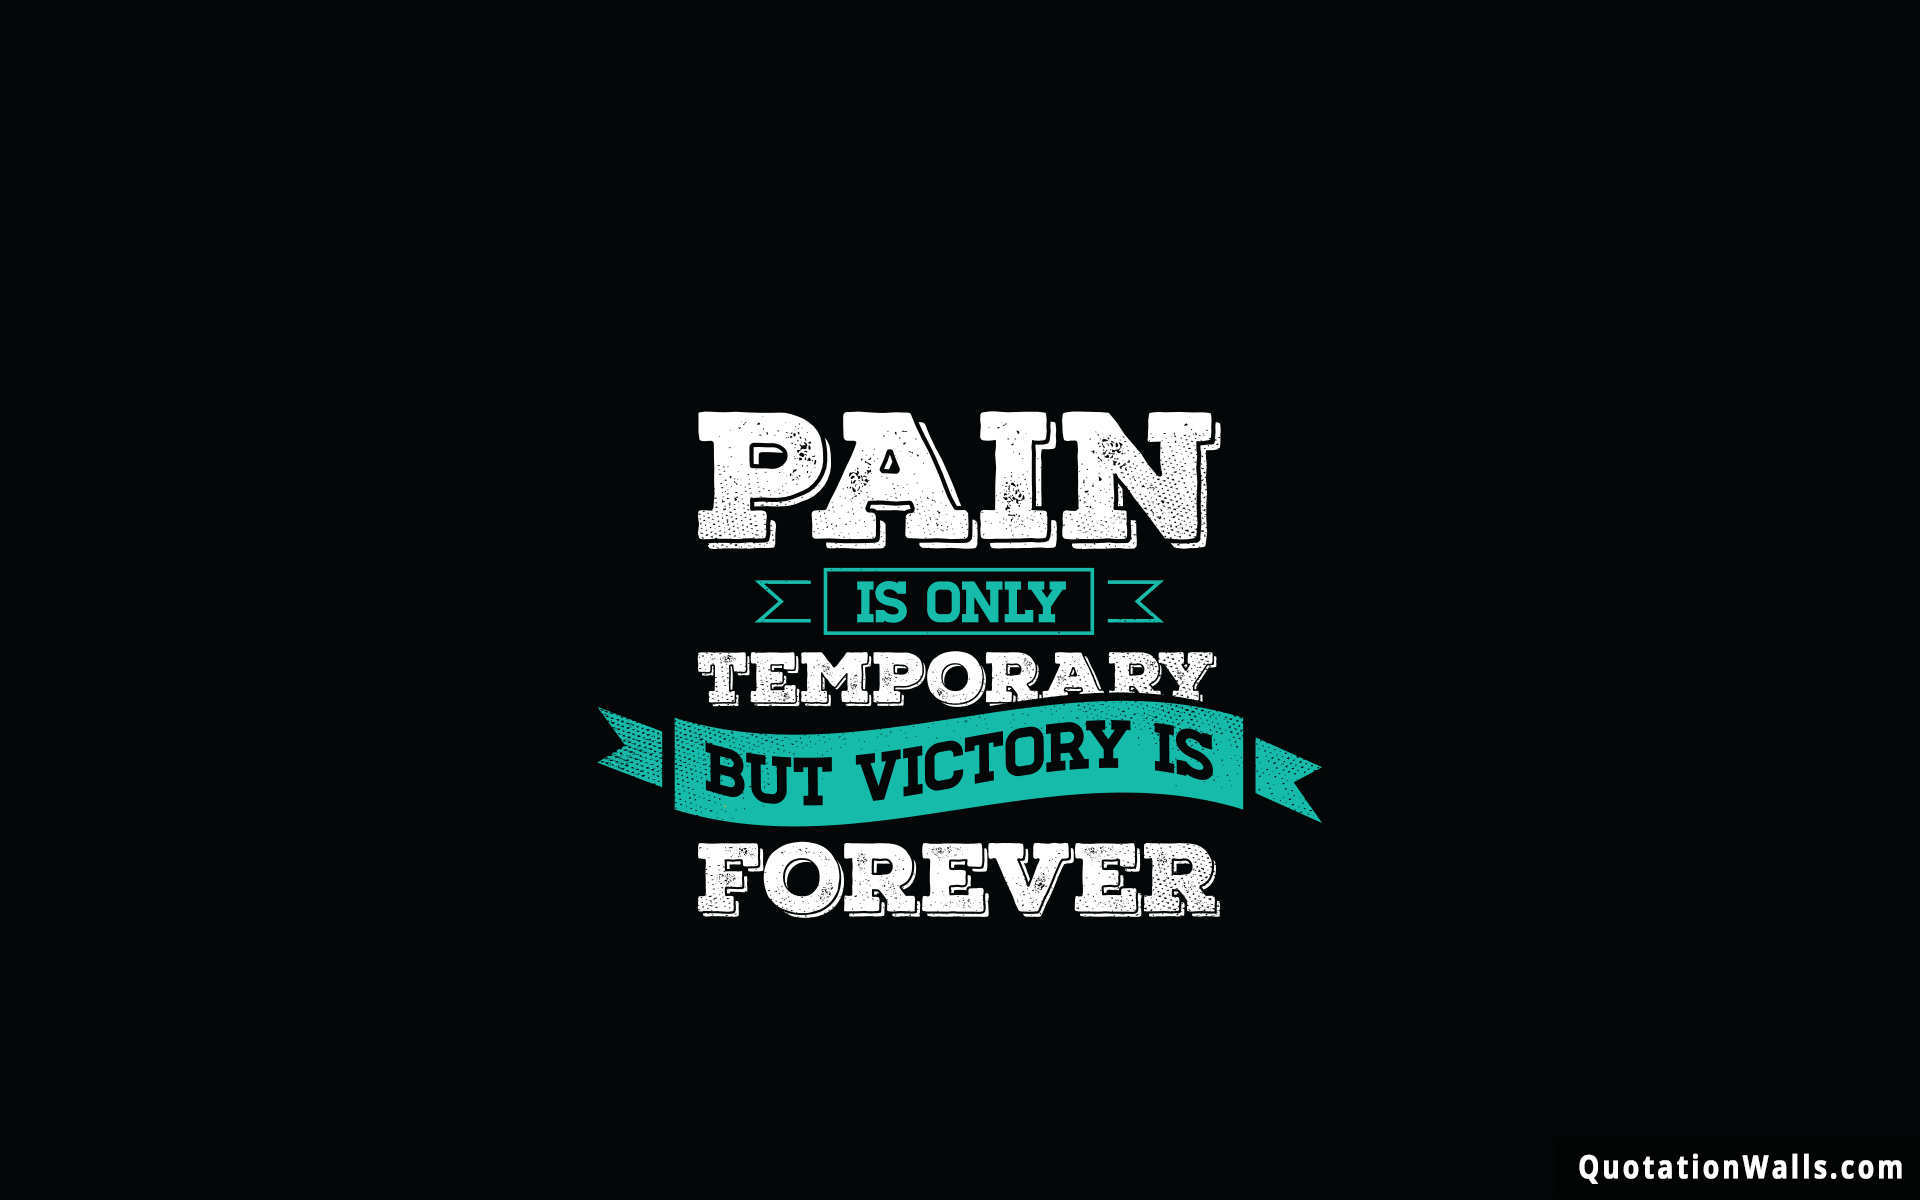 Pain Is Temporary Motivational Wallpaper For Desktop Quotationwalls